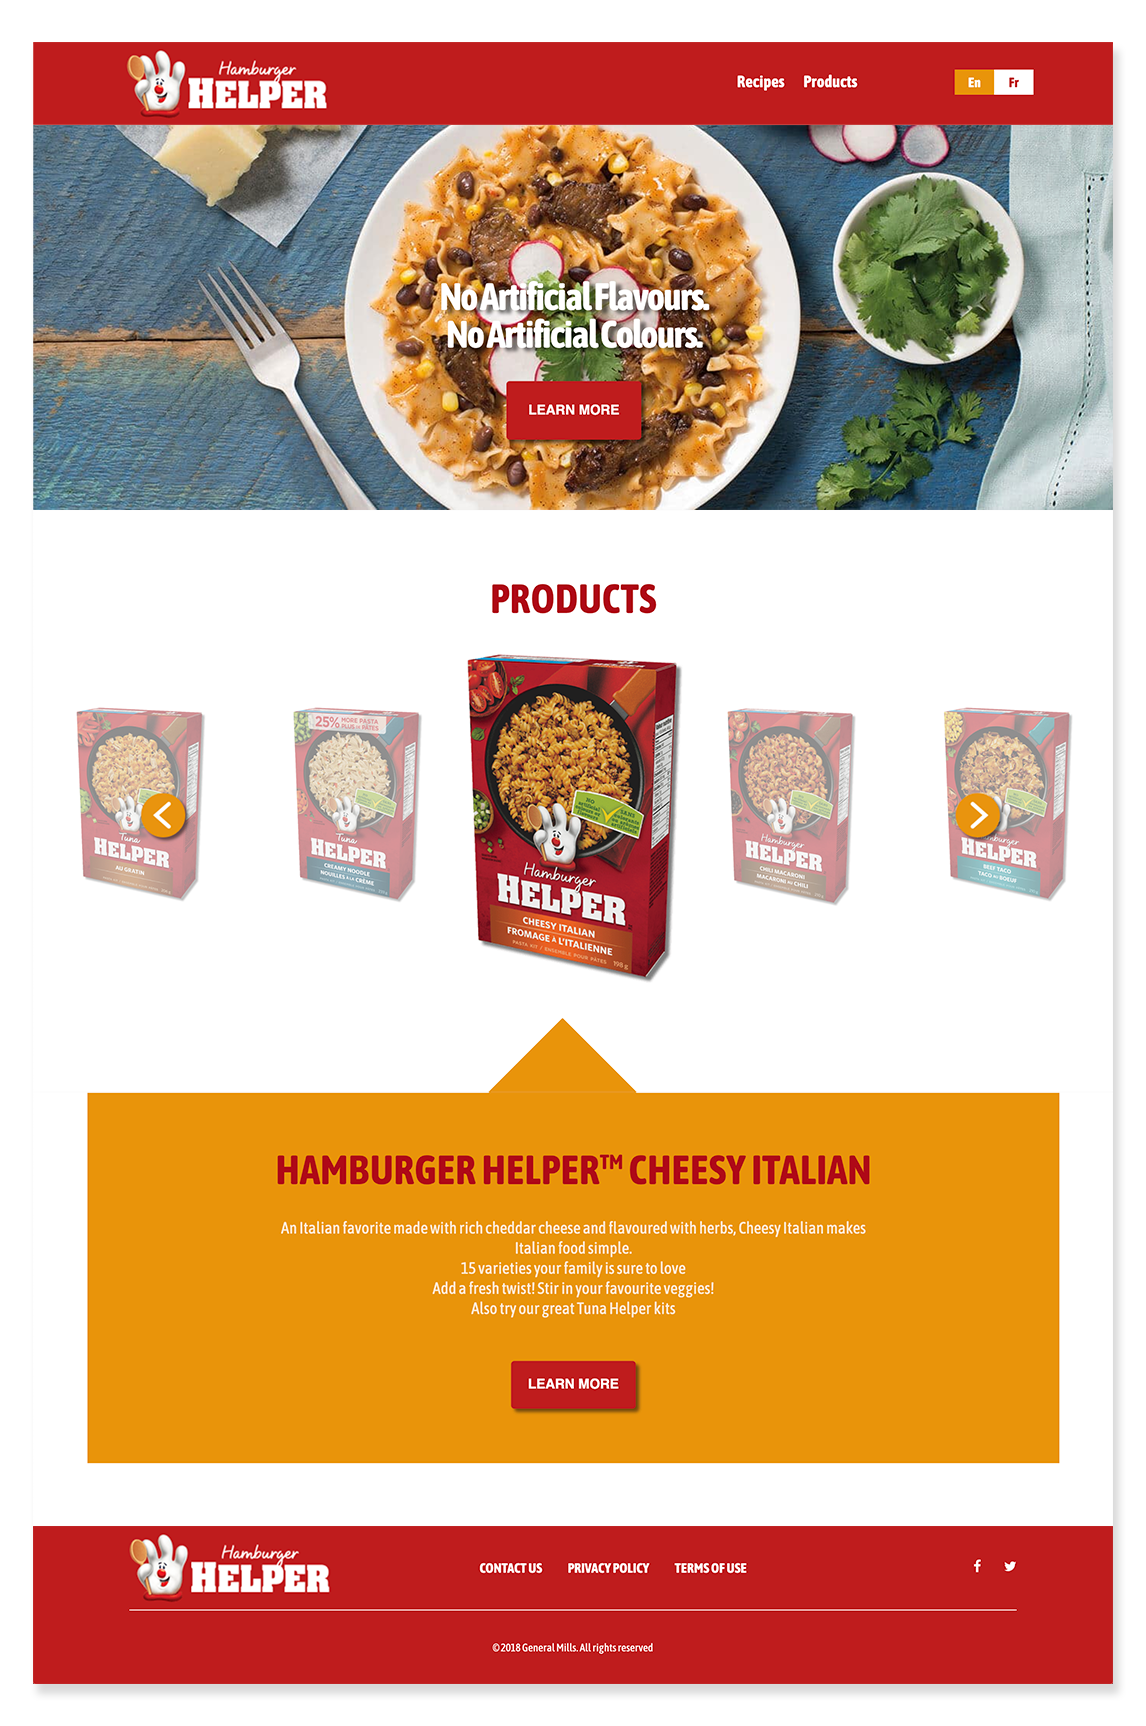 HamburgerHelperPages-Product.png